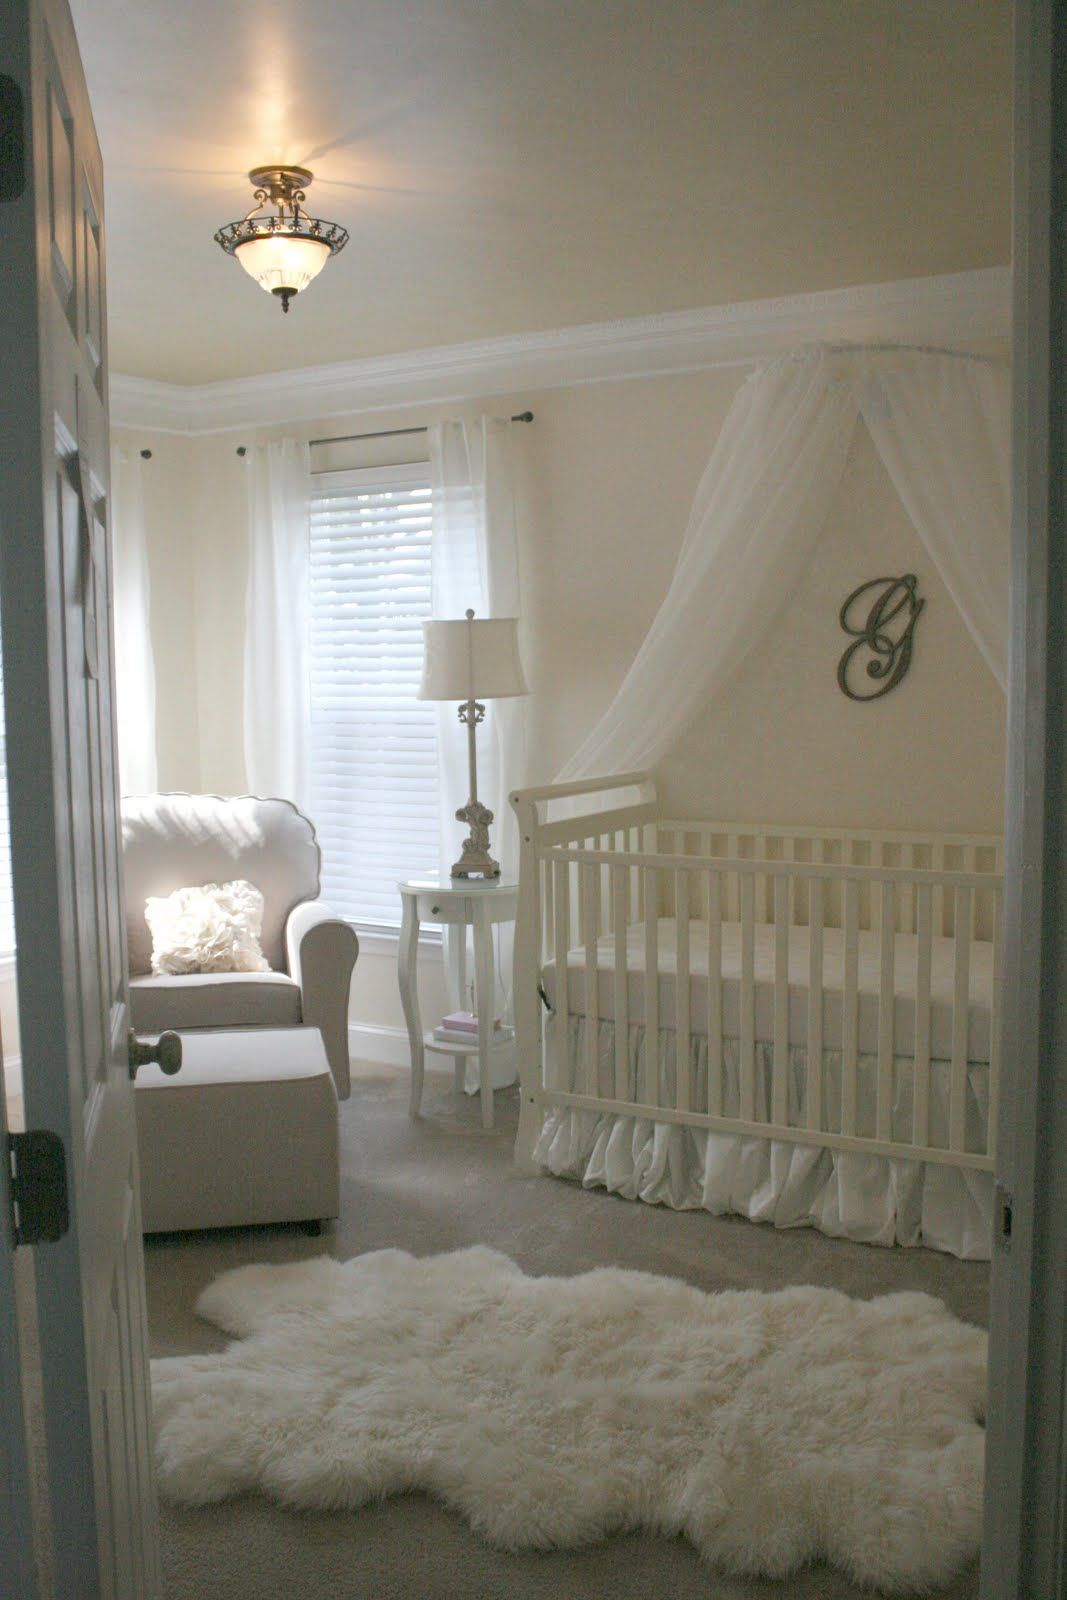 All-white nursery.